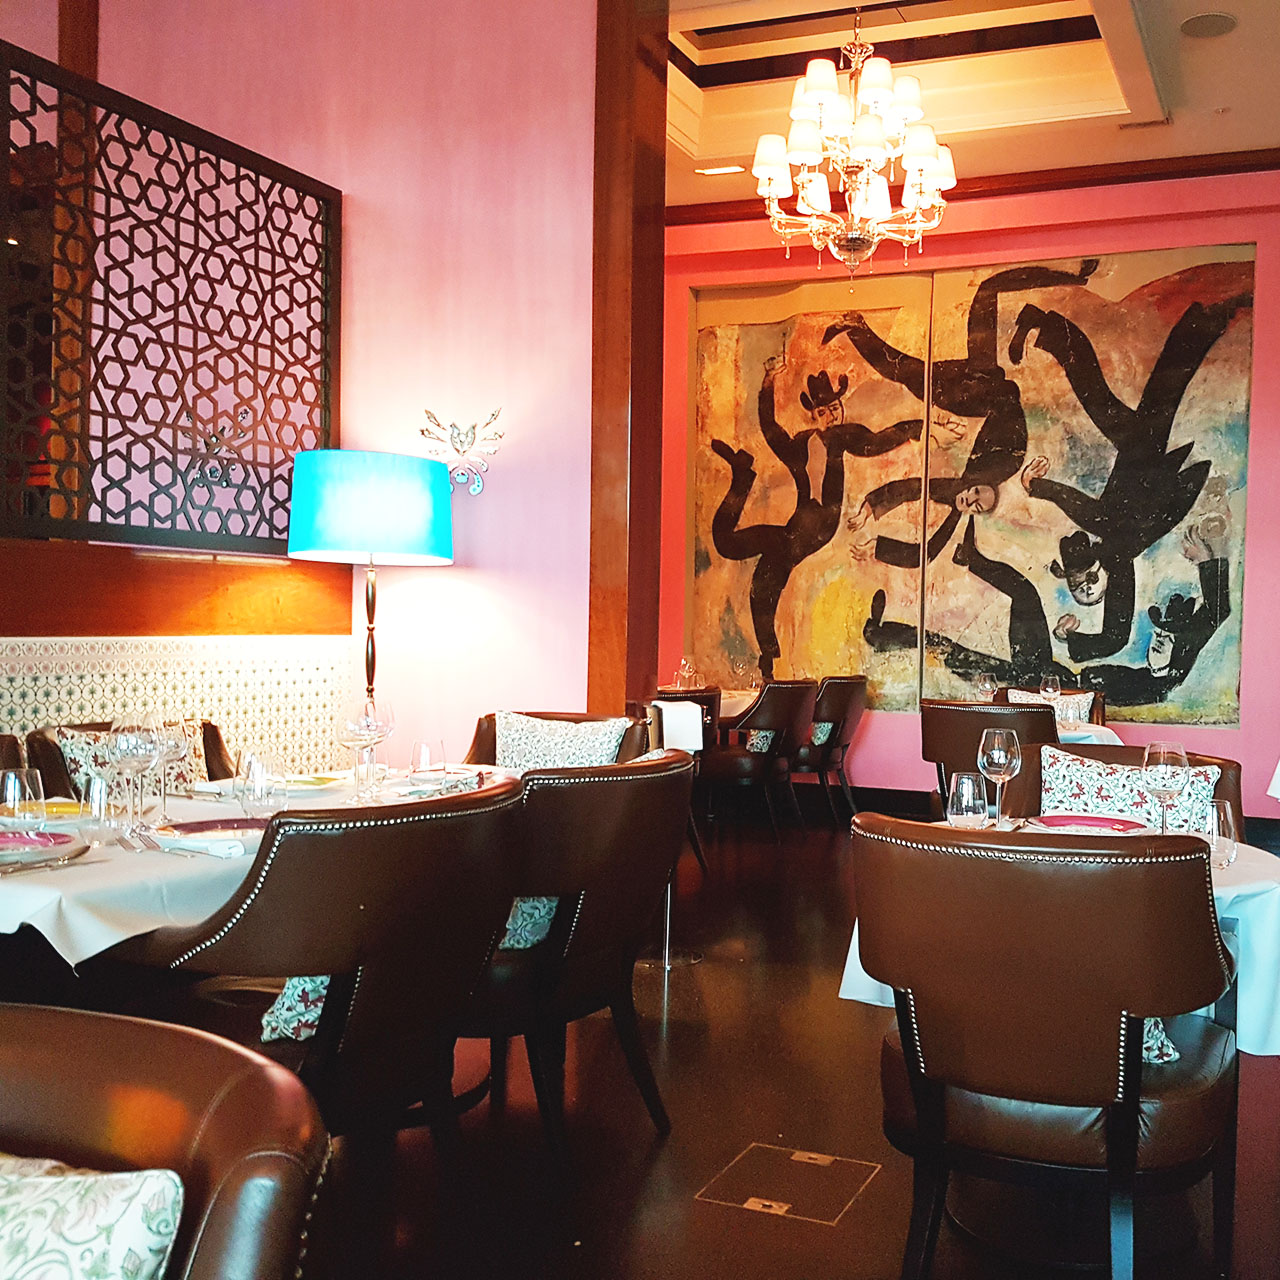 das india club restaurant berlin k stlichkeiten aus indischer k che iwanowski reisenews blog. Black Bedroom Furniture Sets. Home Design Ideas